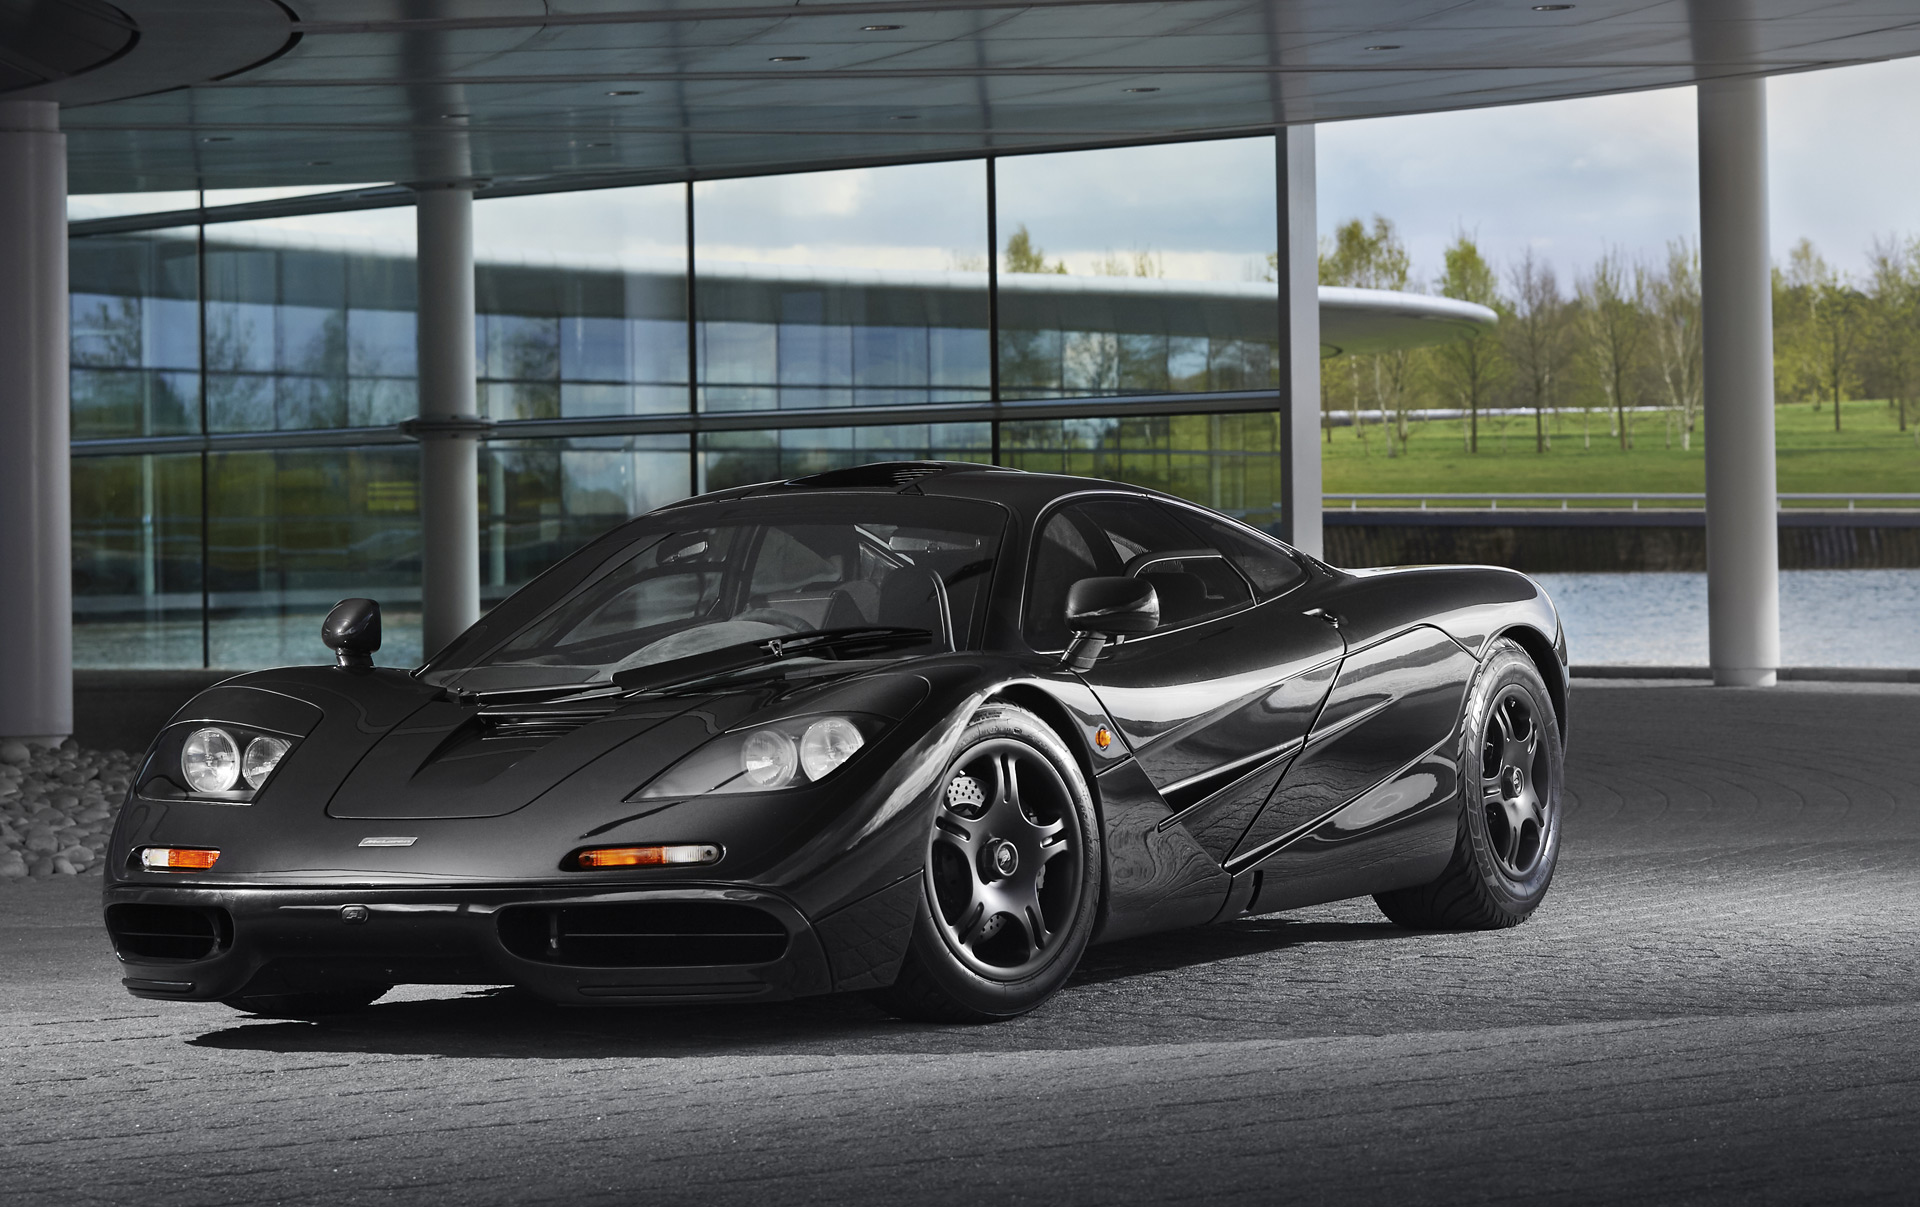 McLaren: All the cars, from F1 to P1